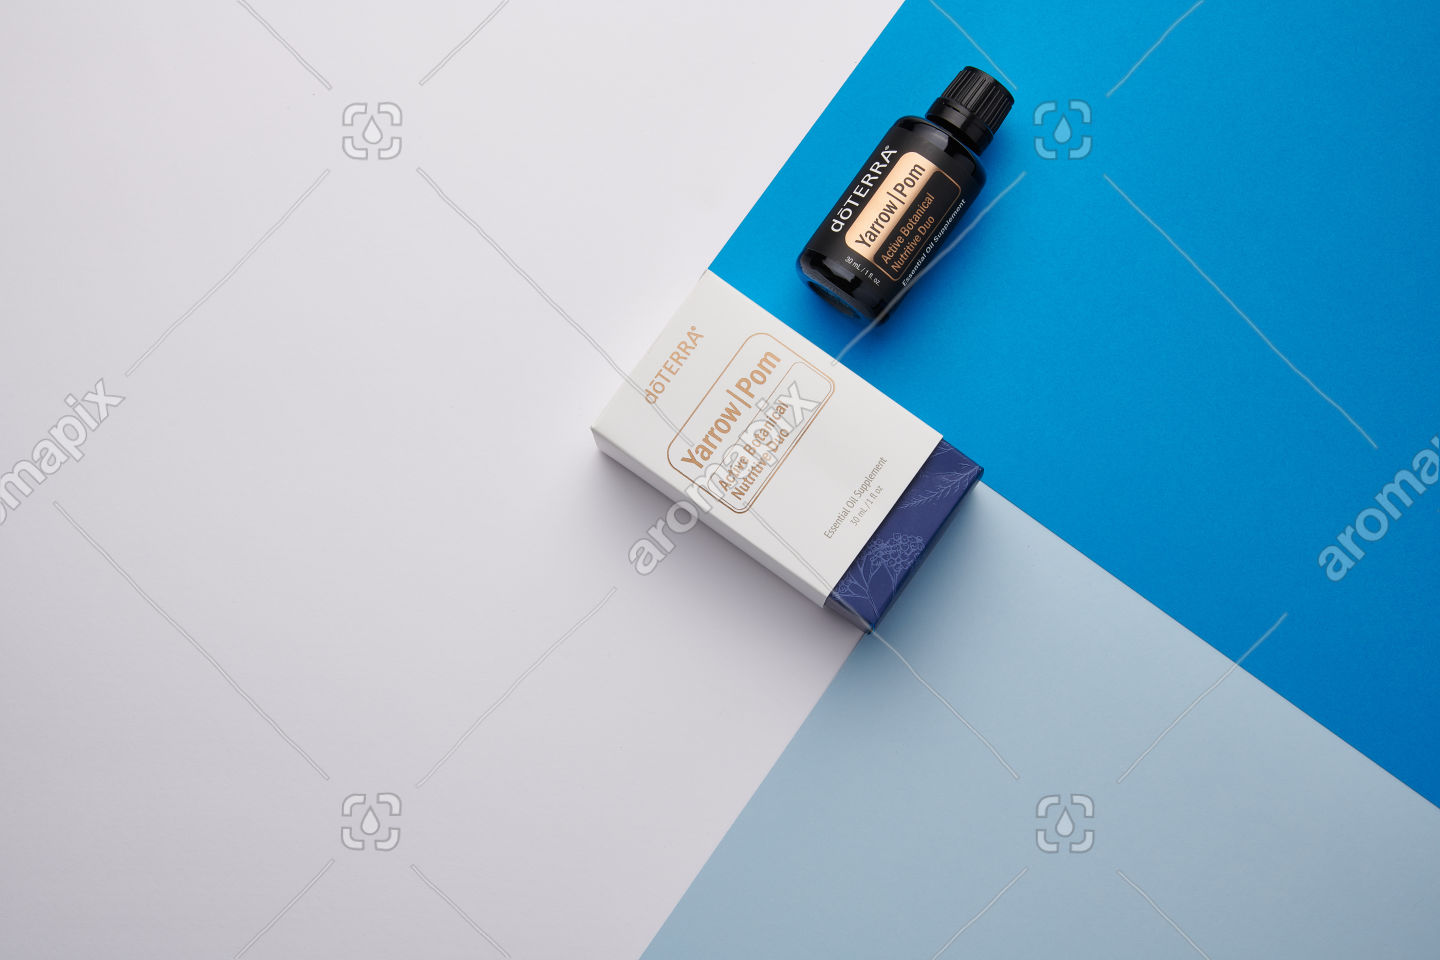 doTERRA Yarrow Pom and box on blue and white geometric background